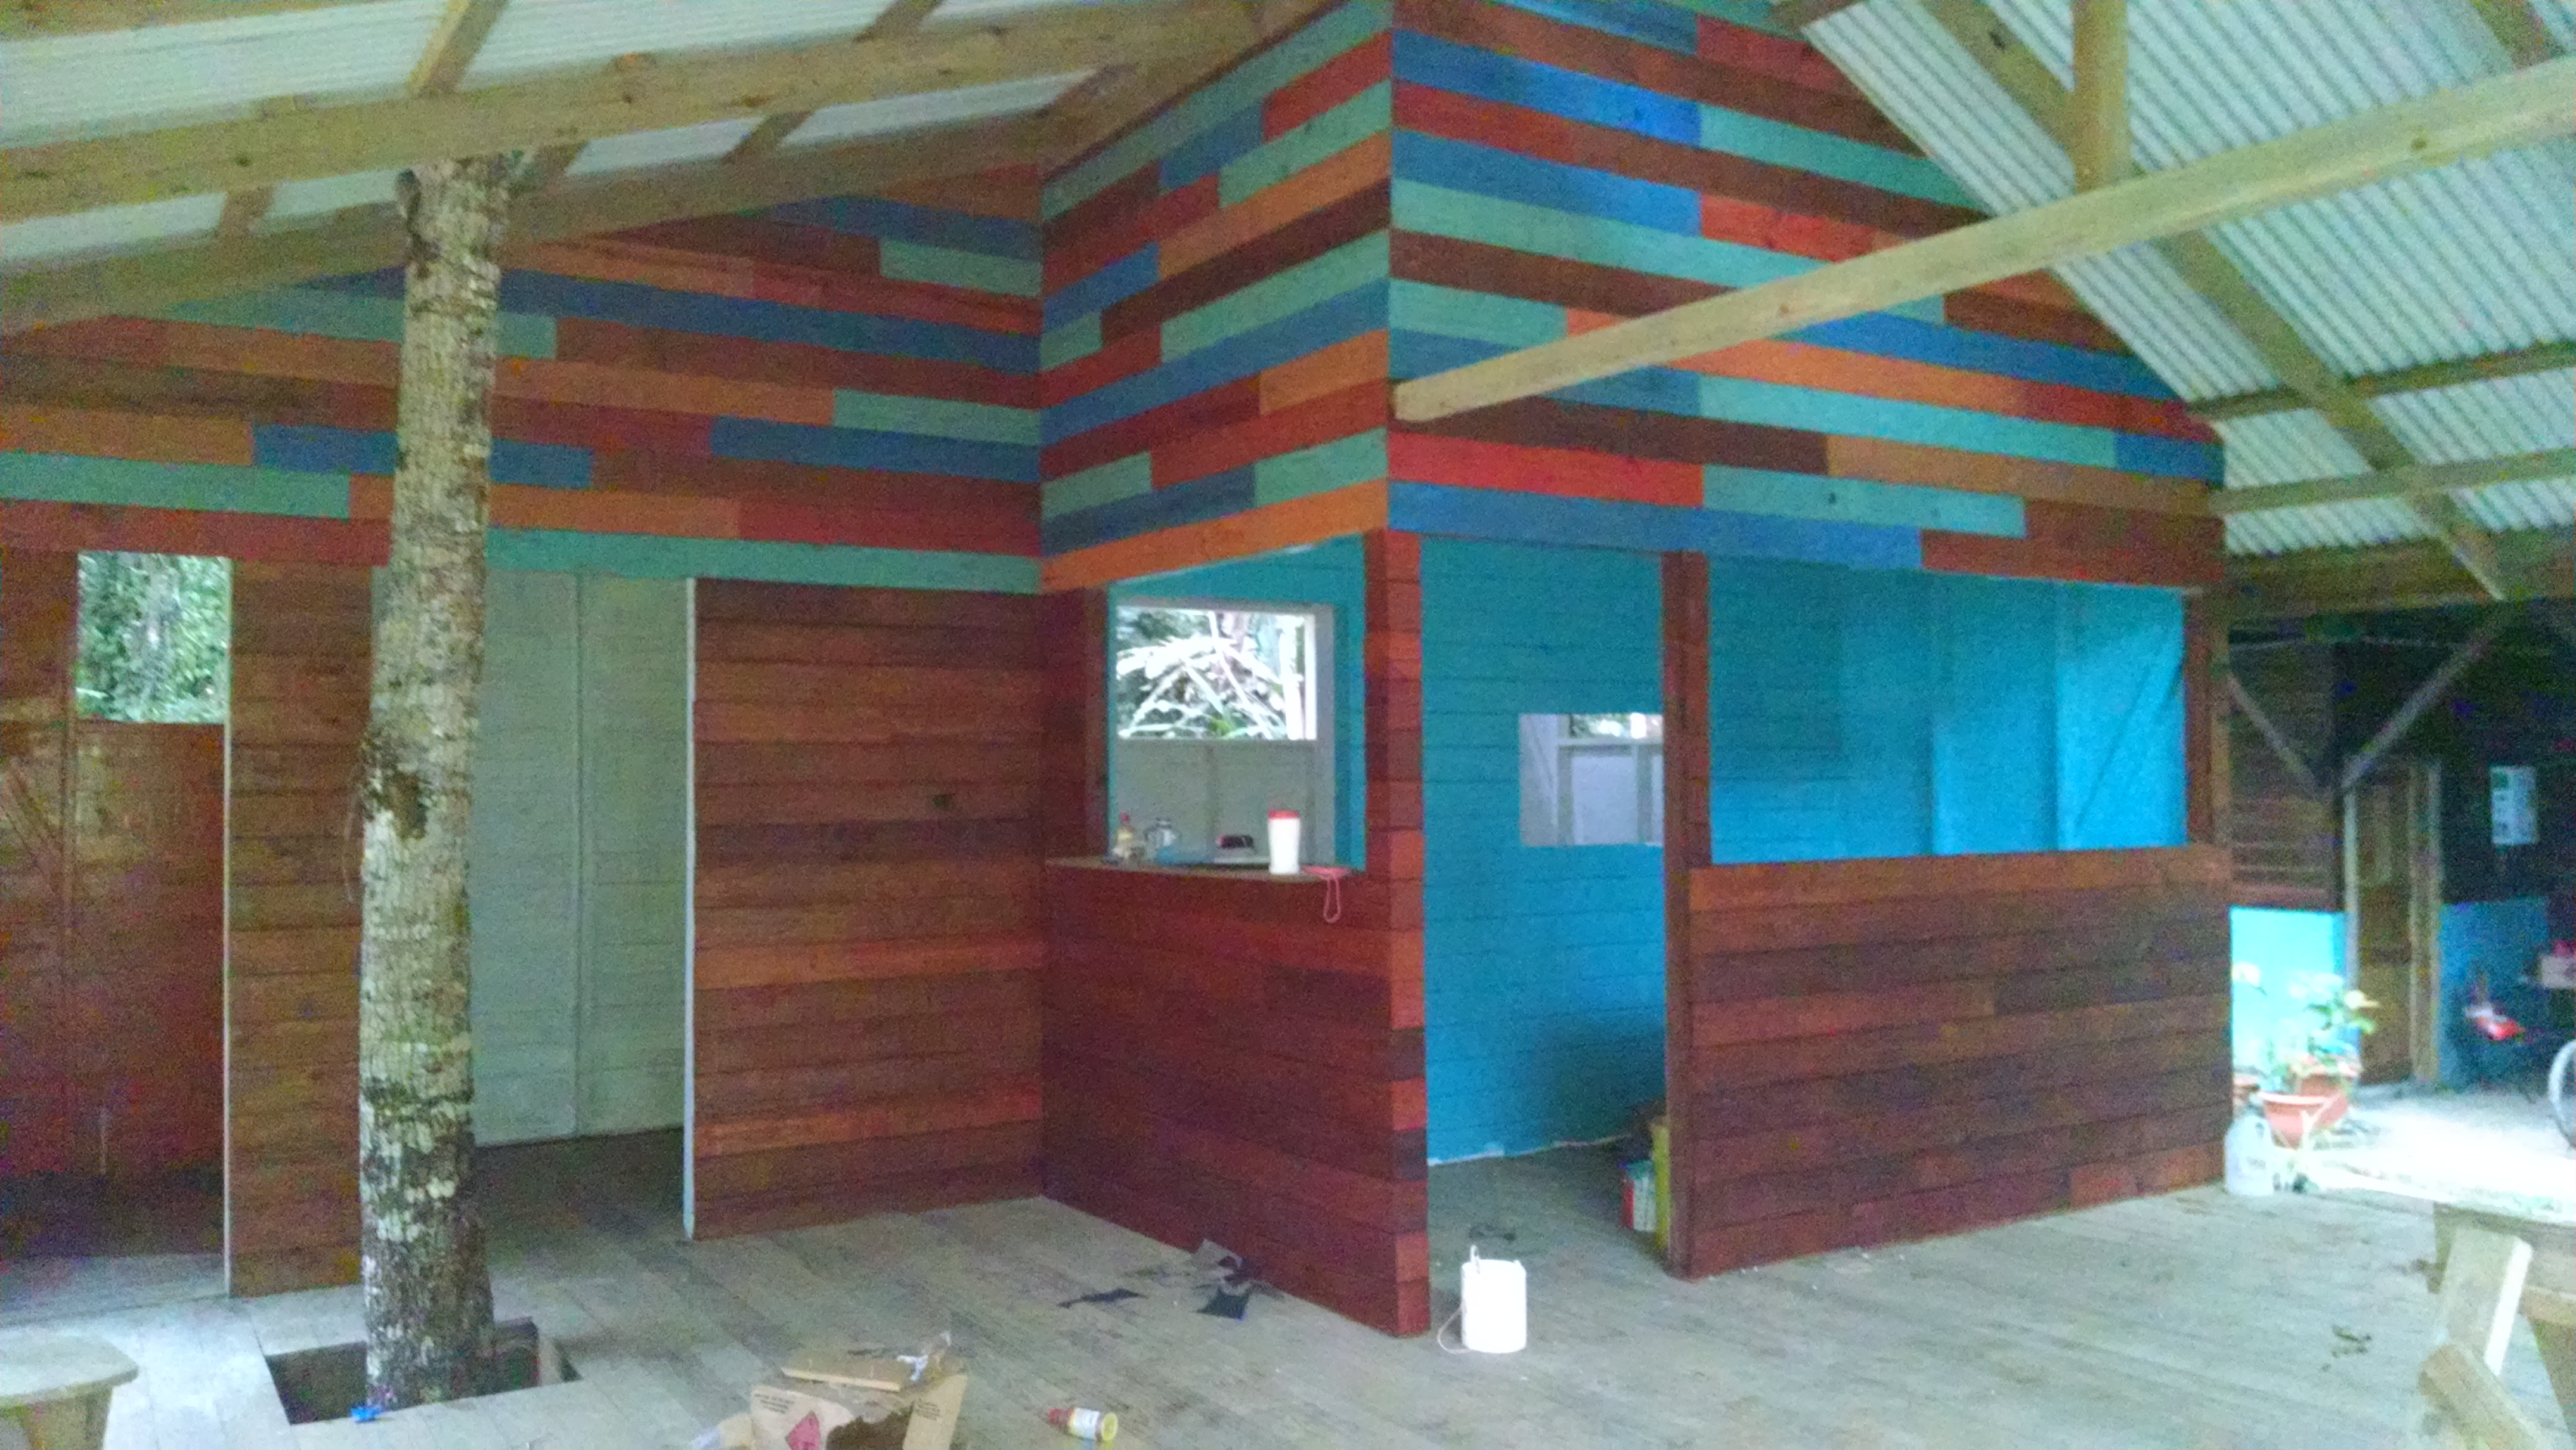 Photo of Surf Break at Paunch Phase 2 Build